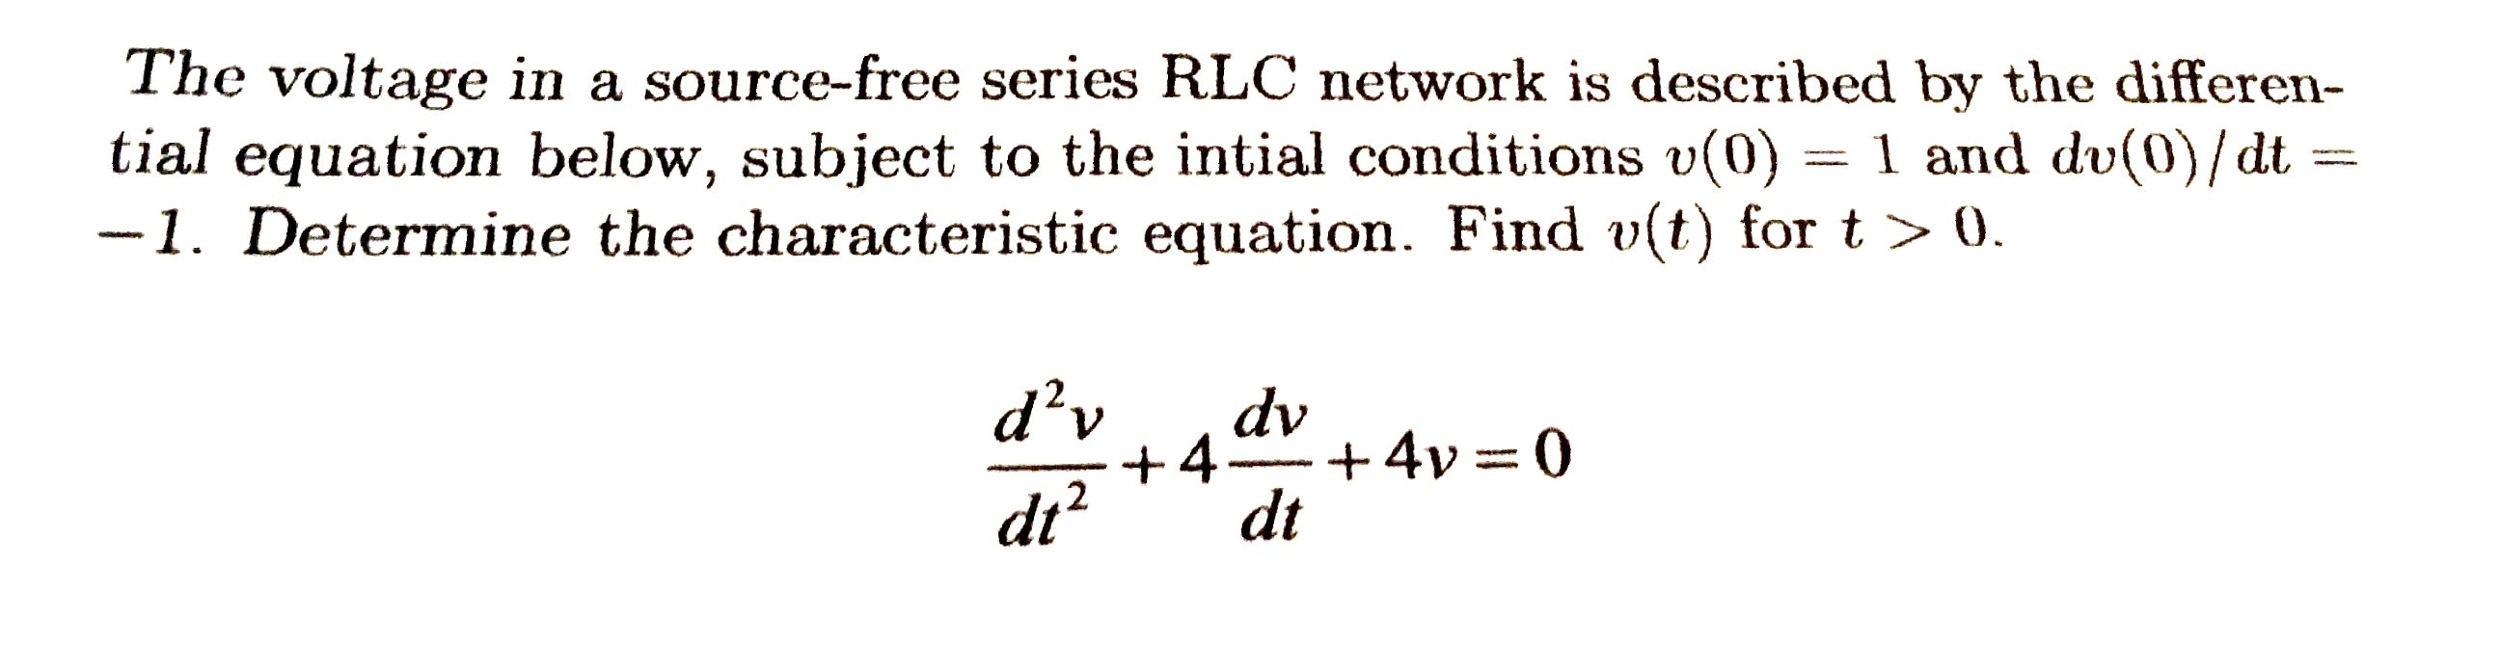 The voltage in a source-free series RLC network is